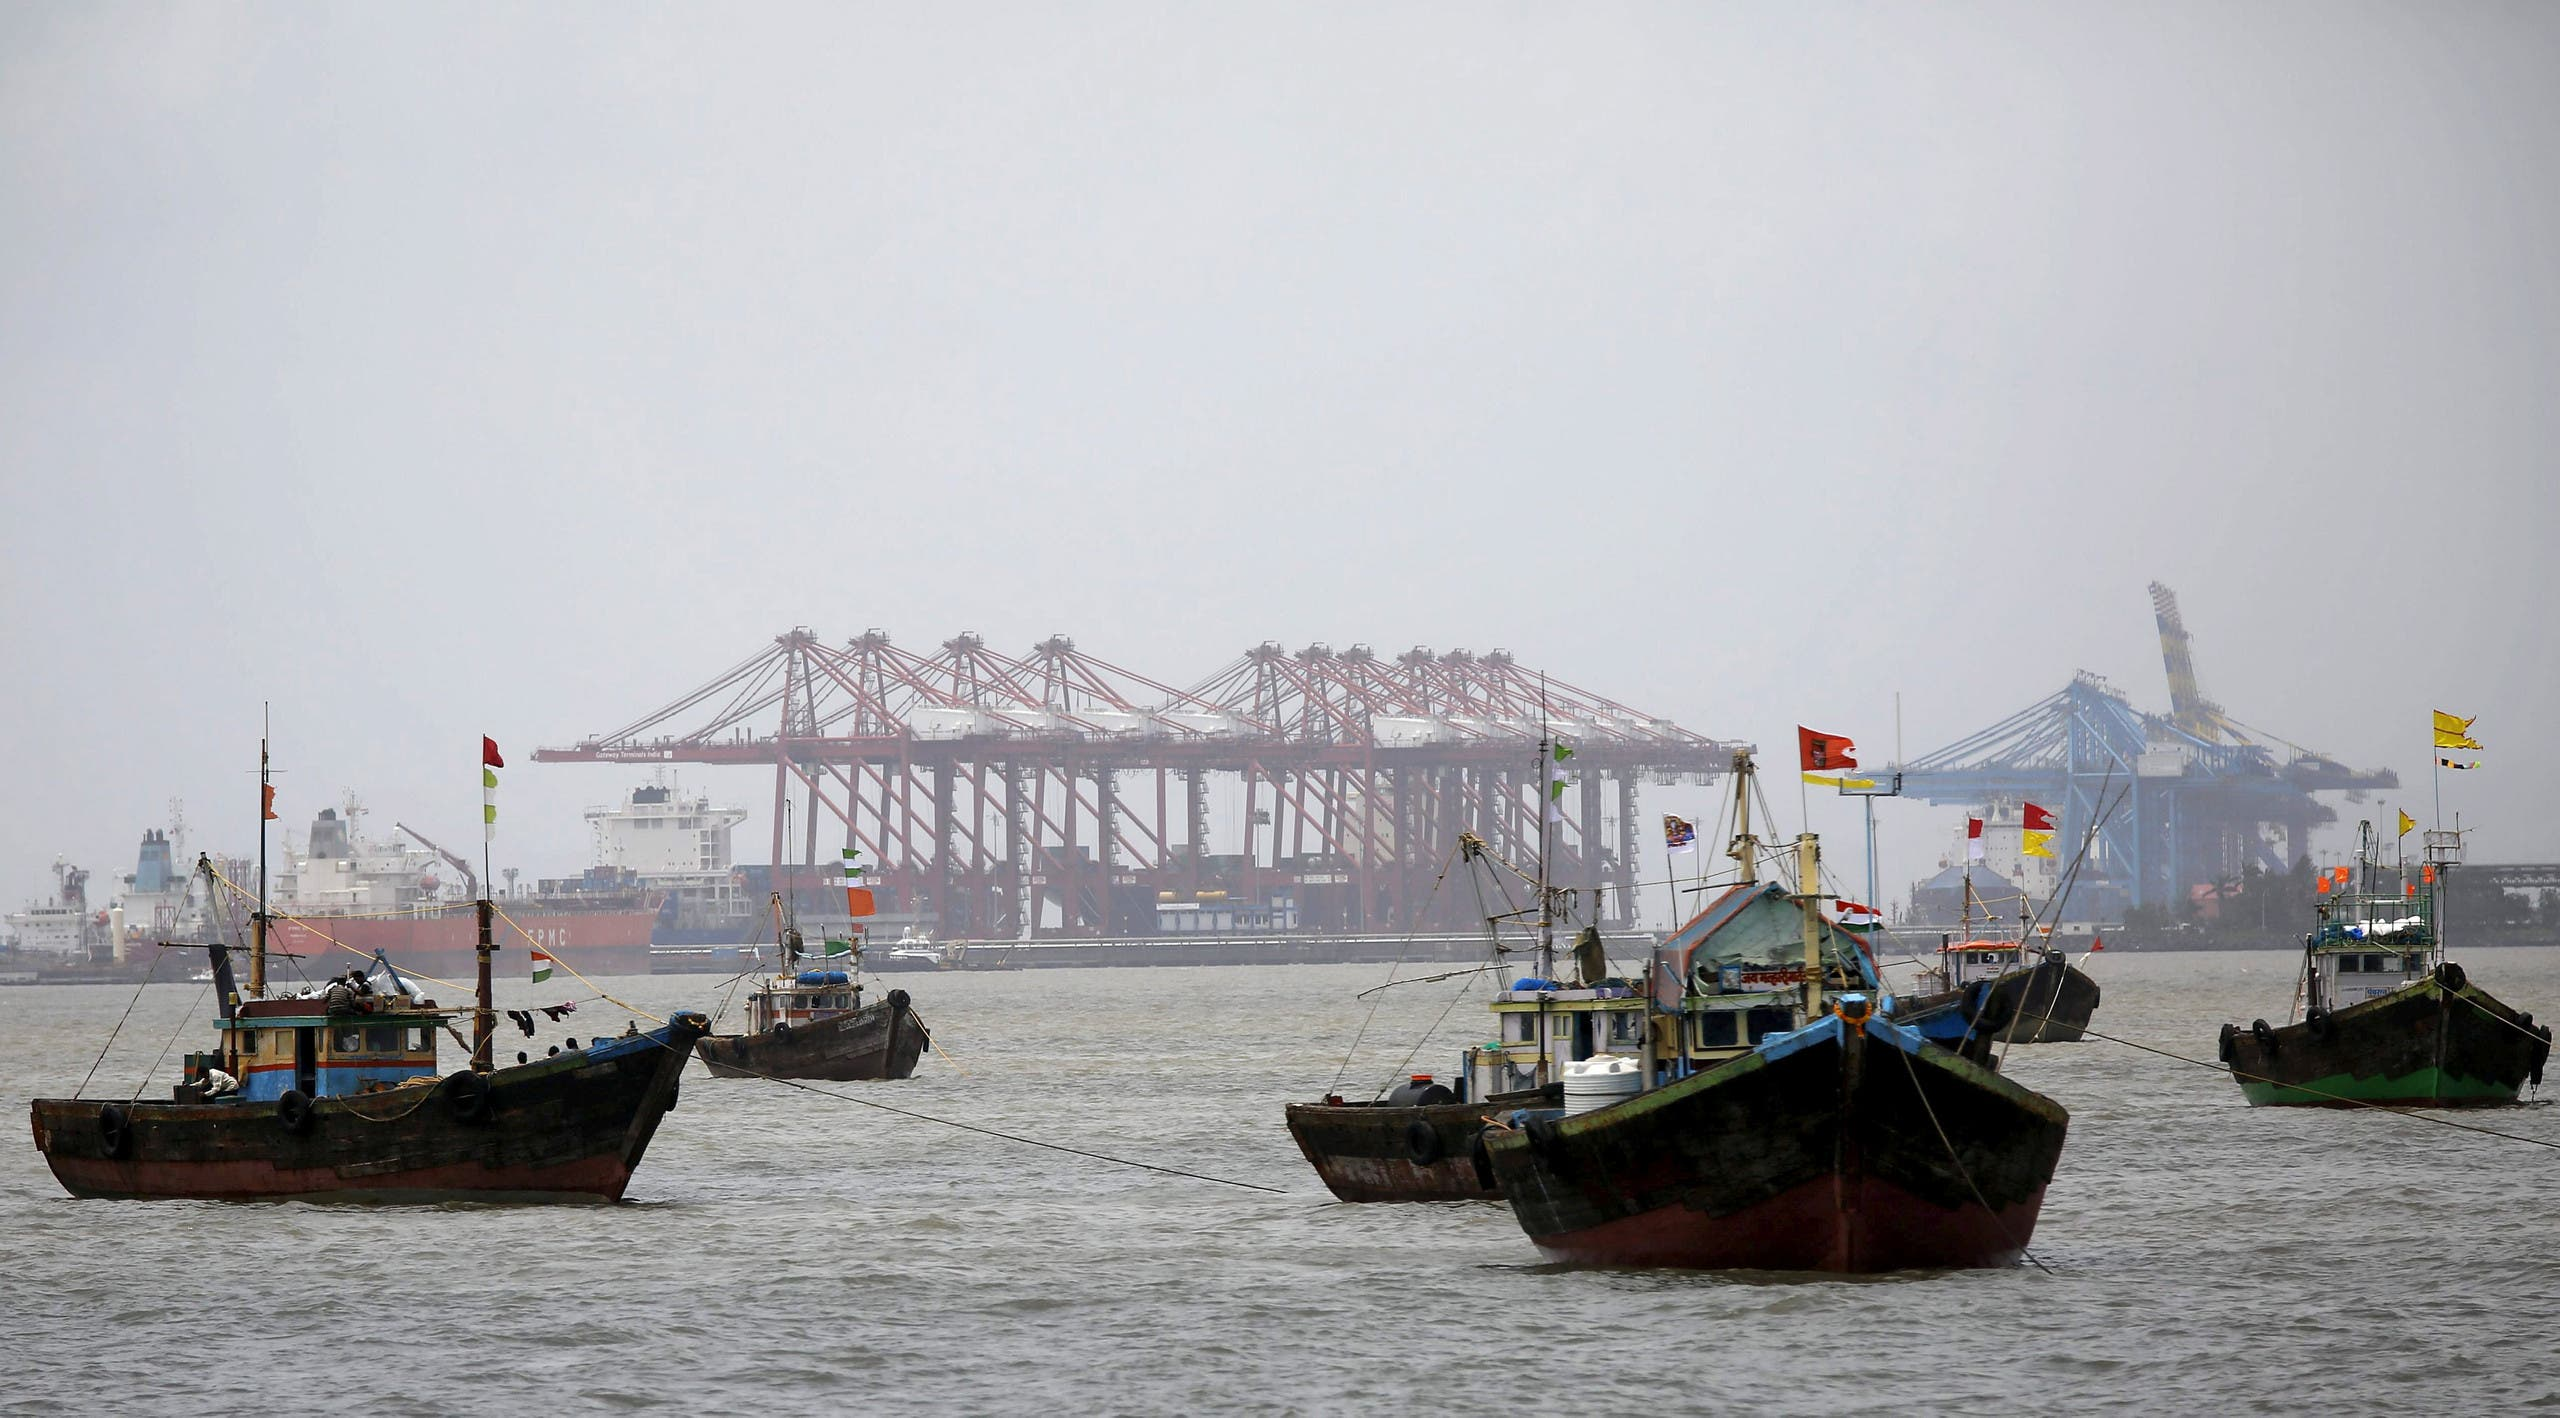 Fishing trawlers in front of the Jawaharlal Nehru Port Trust (JNPT) in Mumbai on July 31, 2015. (Reuters)